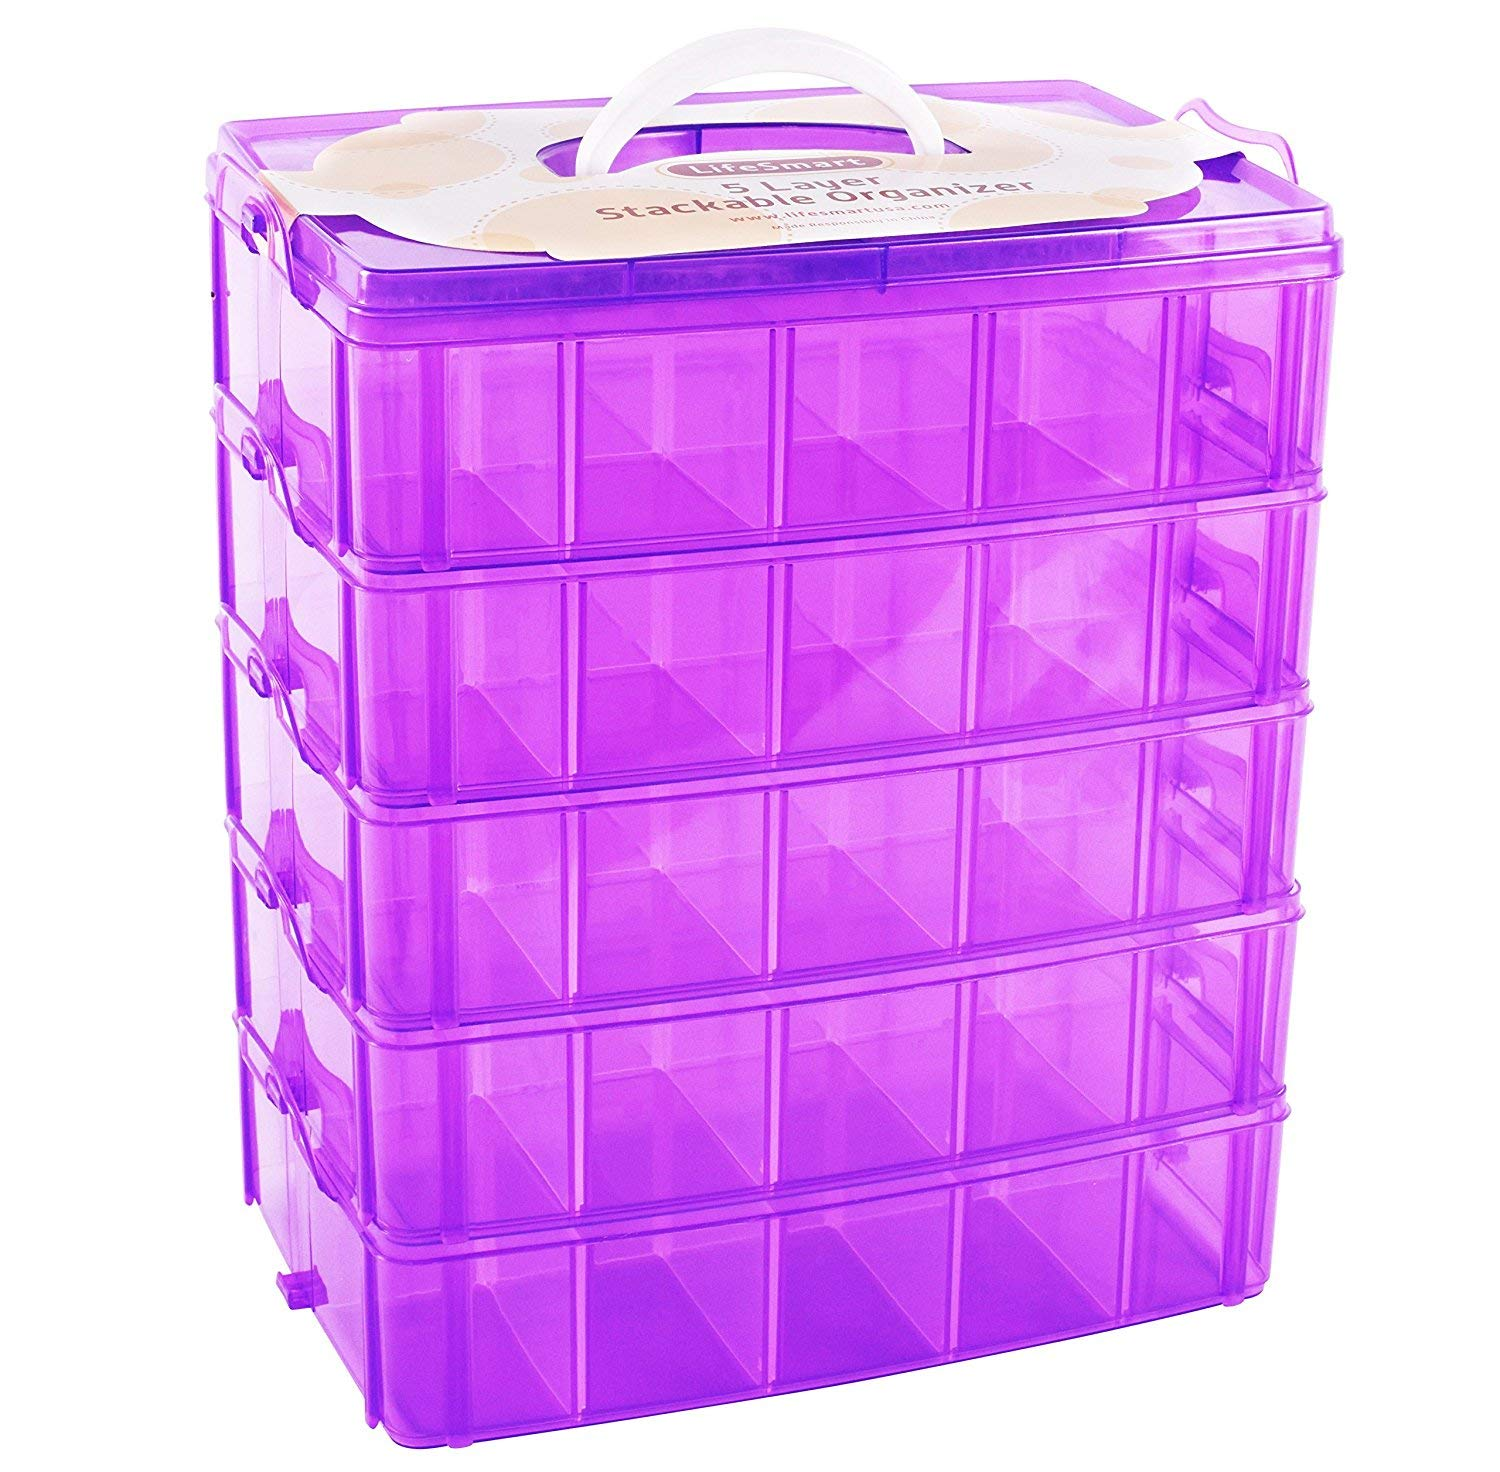 LifeSmart USA Stackable Storage Container Purple 50 Adjustable Compartments Compatible with Lego Dimensions LOL Surprise Littlest Pet Shop Arts and Crafts and More (Standard 5 Tier)